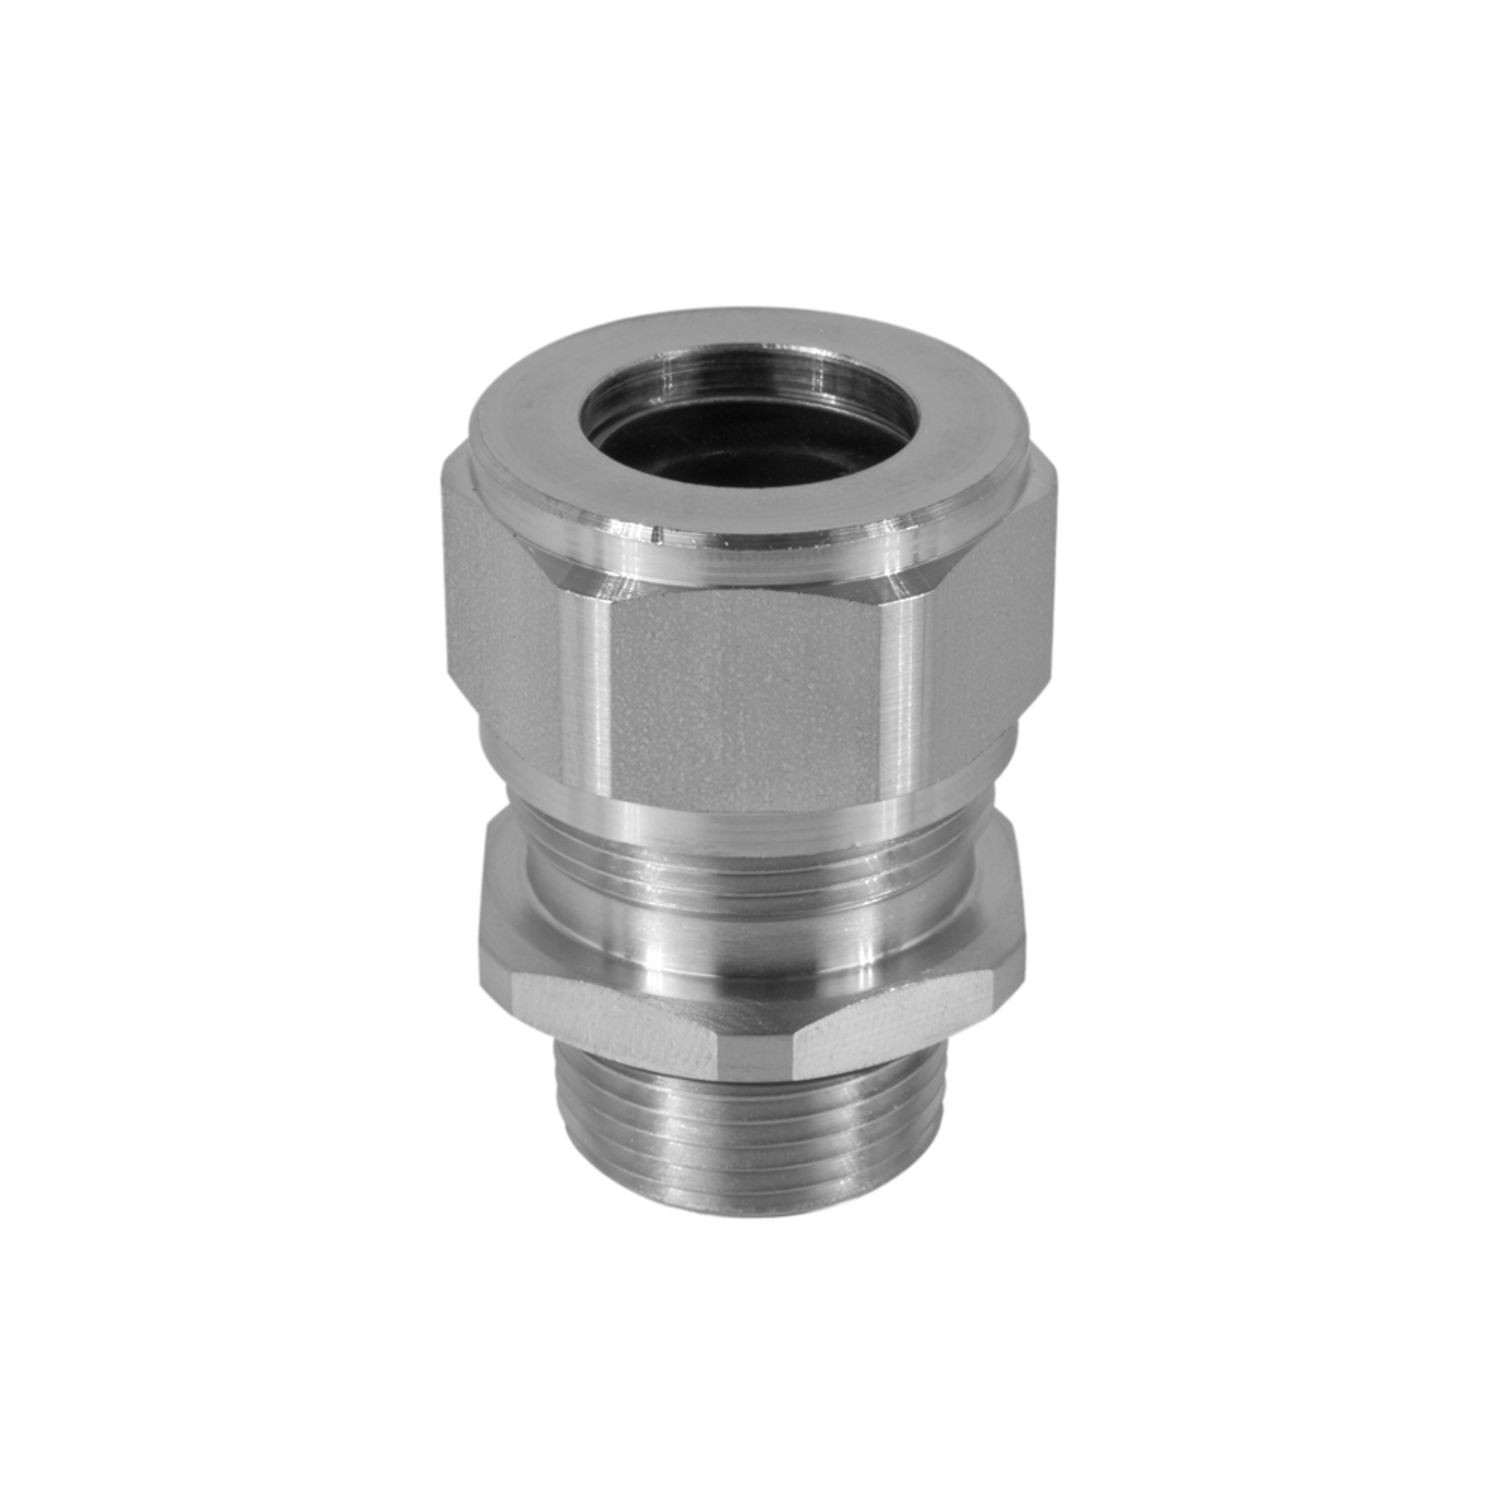 RSSS Series Stainless Steel Corrosion-Resistant Cord Connector, 1|2 ...